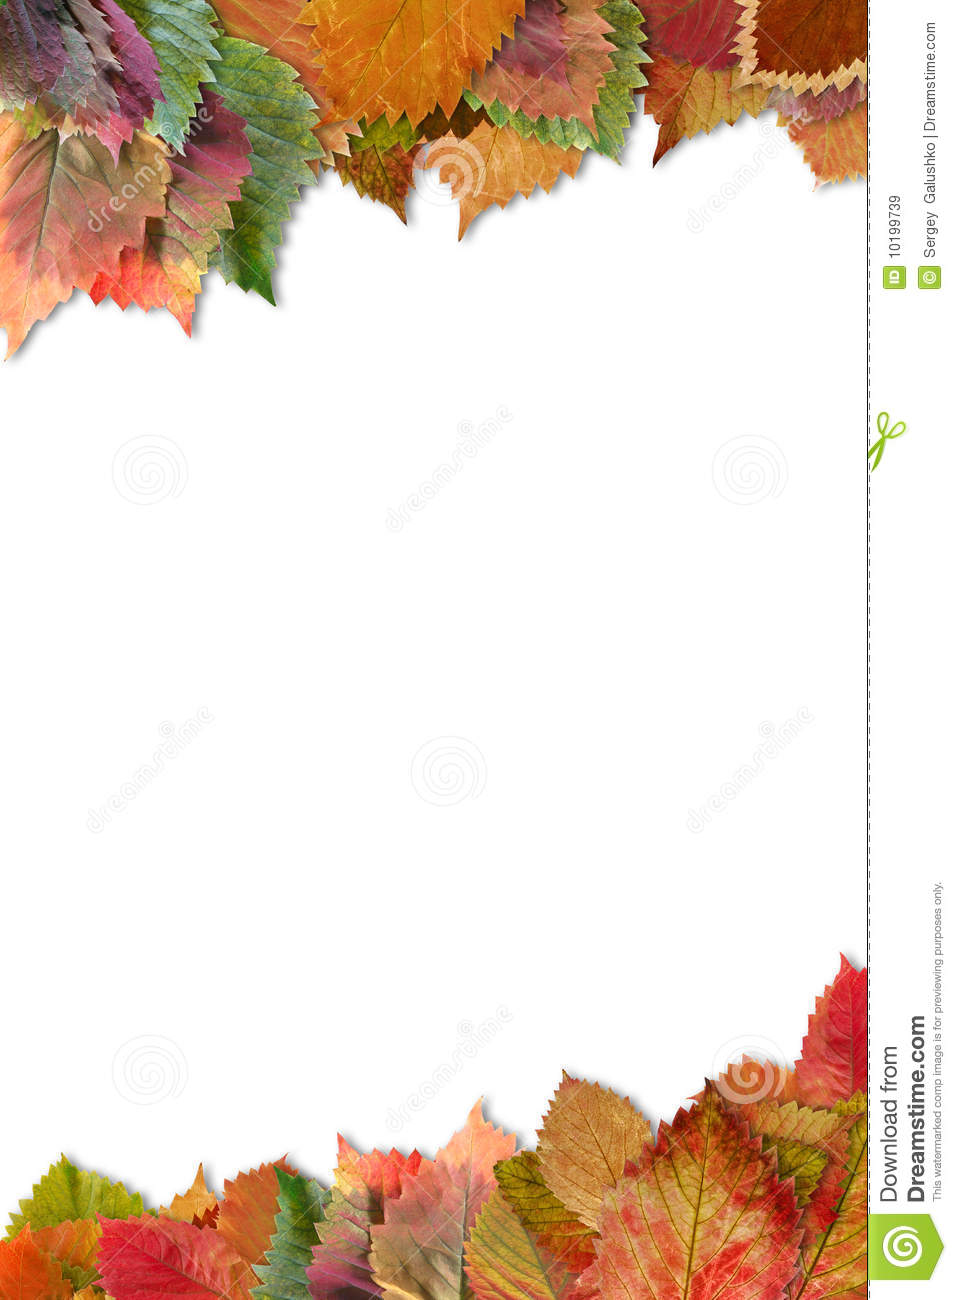 Fall Wallpaper Border Frame From Autumn Leaves With Shadow Stock Image Image